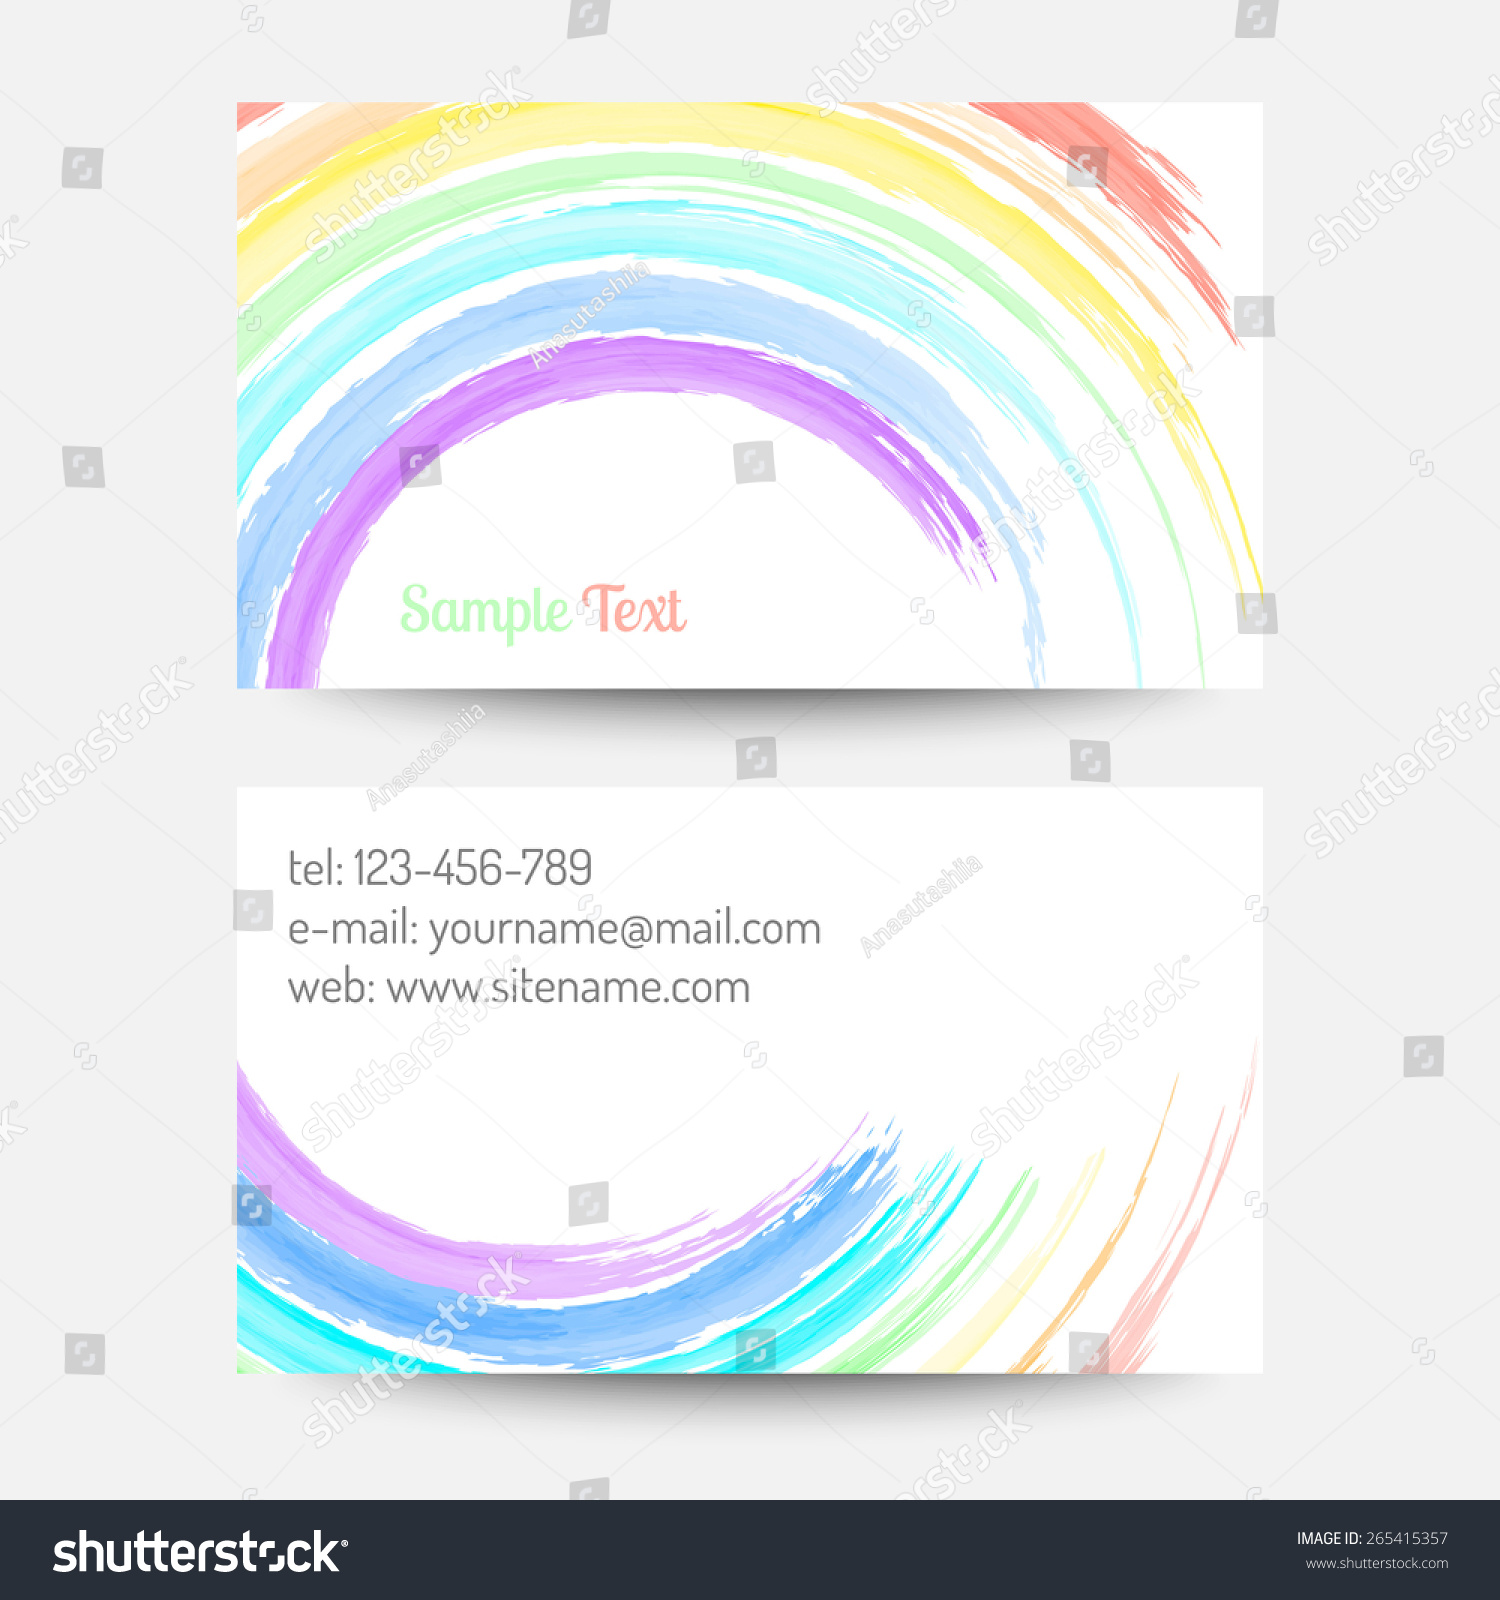 Magnificent 1 Page Resumes Tall 10 Envelope Template Indesign Solid 100 Day Plan Template 10x13 Envelope Template Youthful 16x20 Collage Template Bright18th Birthday Invitation Templates Vector Rainbow Color Business Card Template Stock Vector 265415357 ..